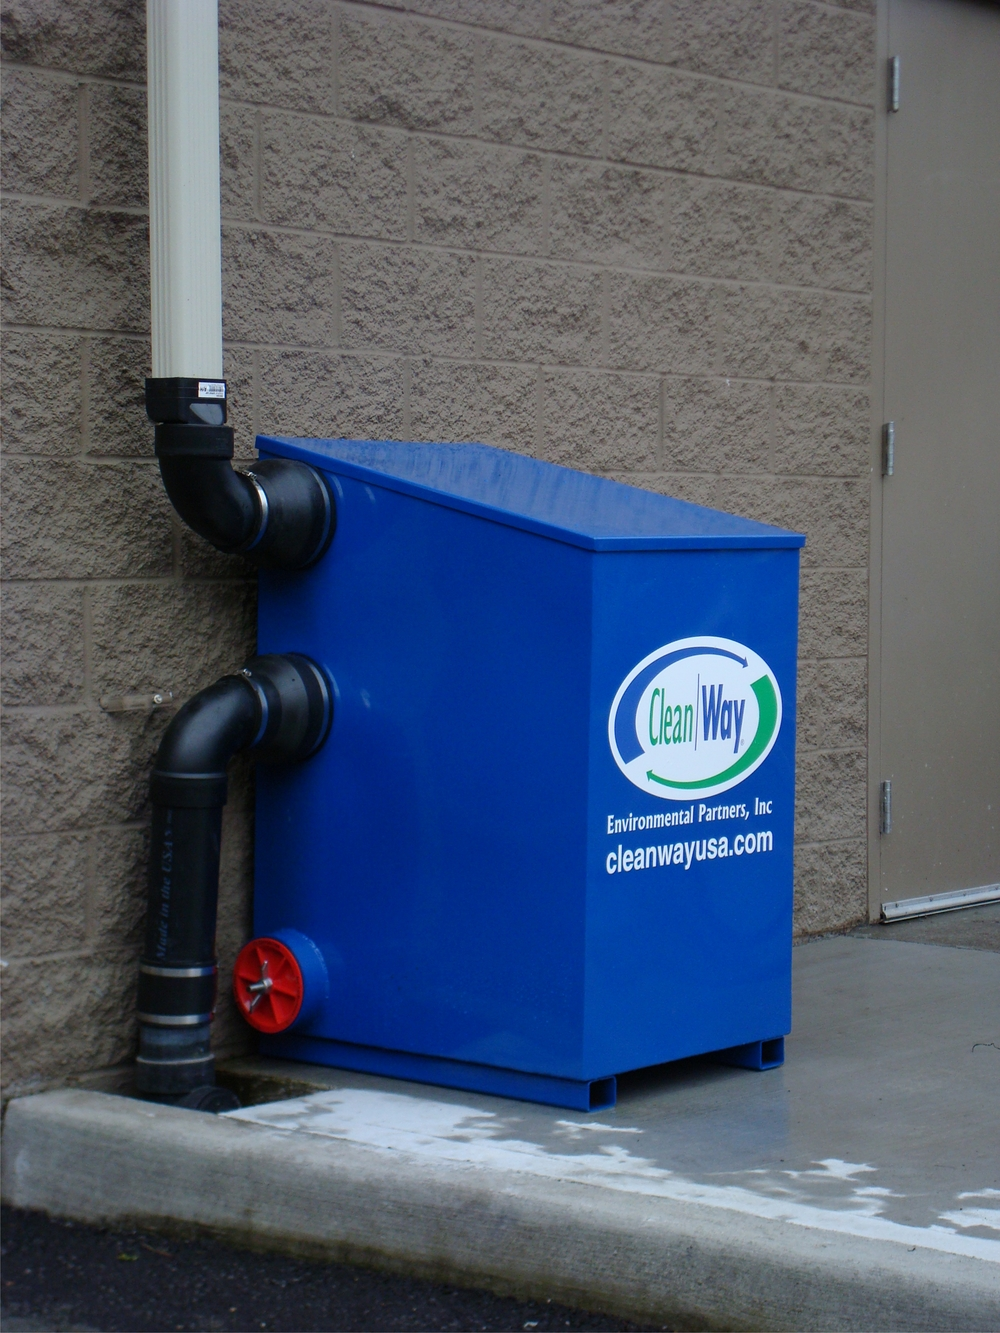 Downspout Filtration effectively captures rooftop runoff in a small footprint